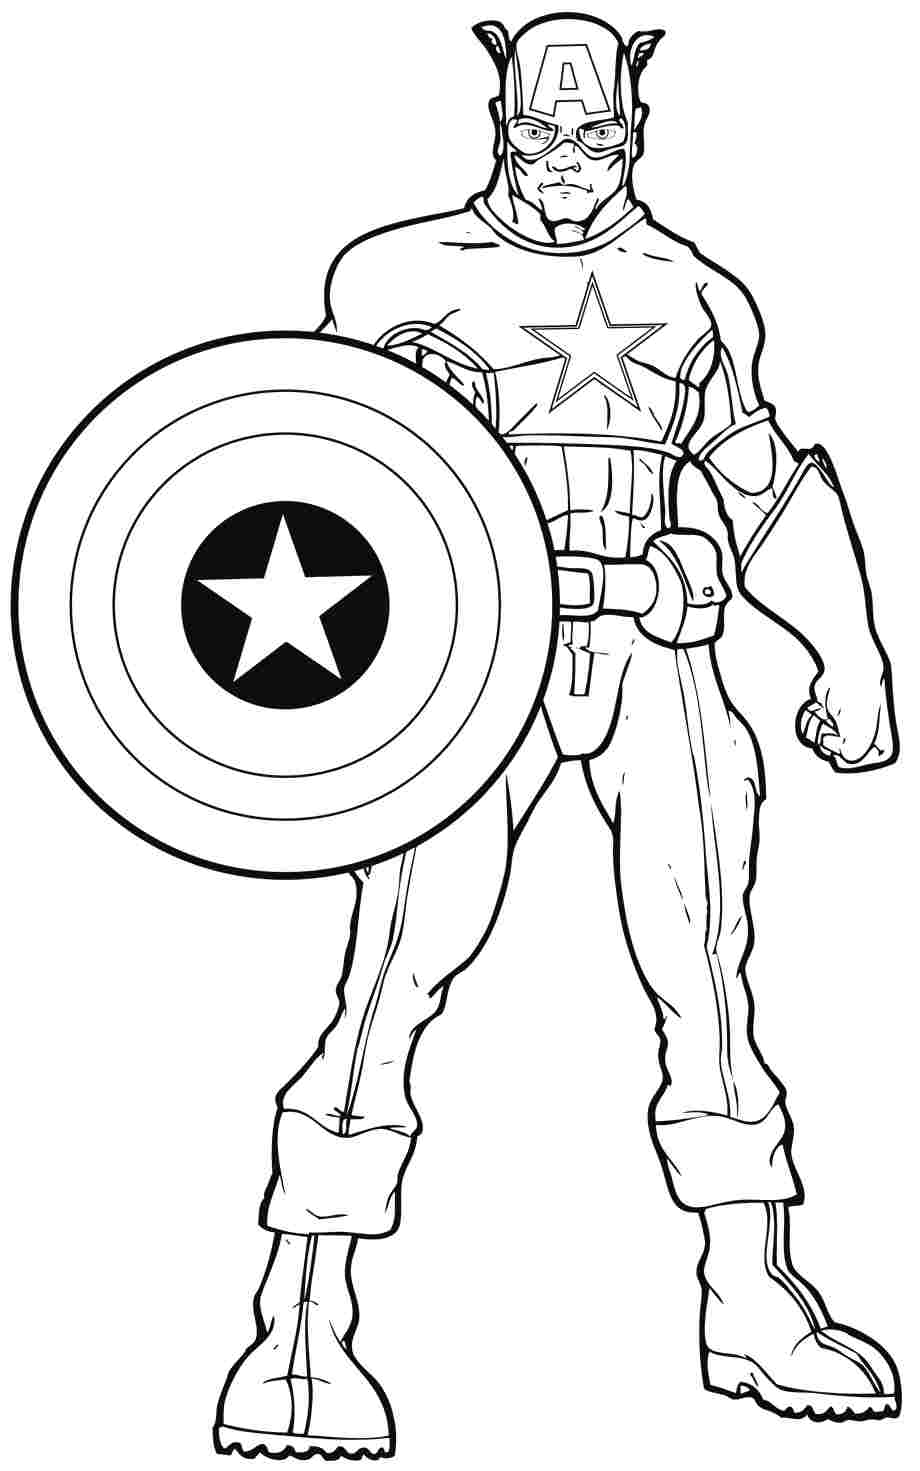 Coloring Pages Of Superheroes Printables - Coloring Home